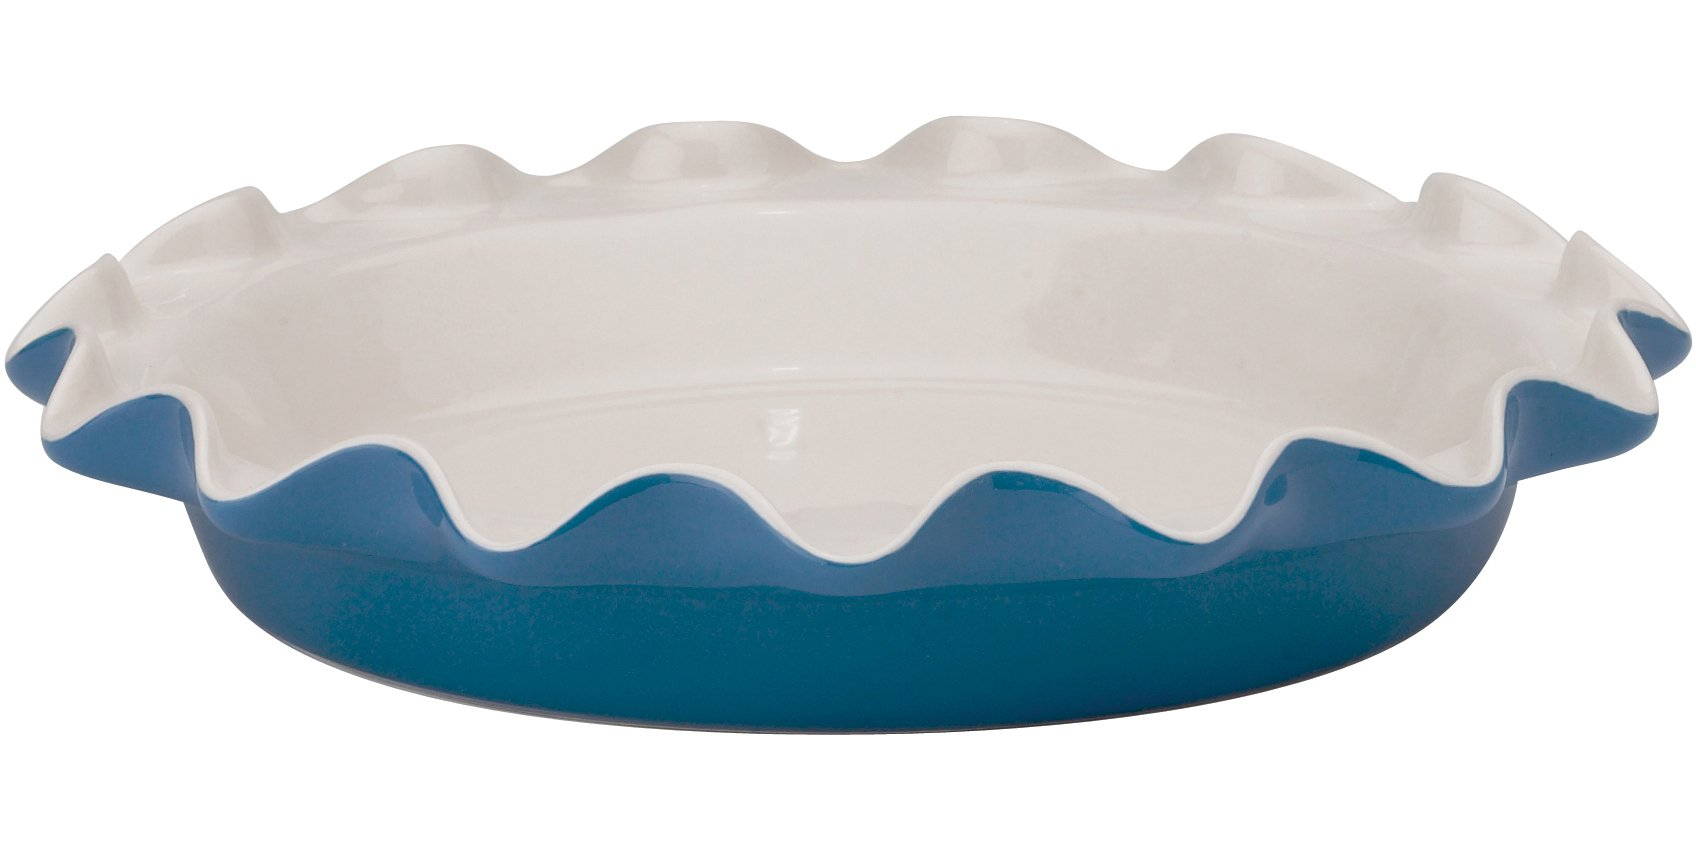 Rose Levy Beranbaum's Perfect Pie Plate, 9-Inch, Ceramic, Blueberry by HIC Harold Import Co.